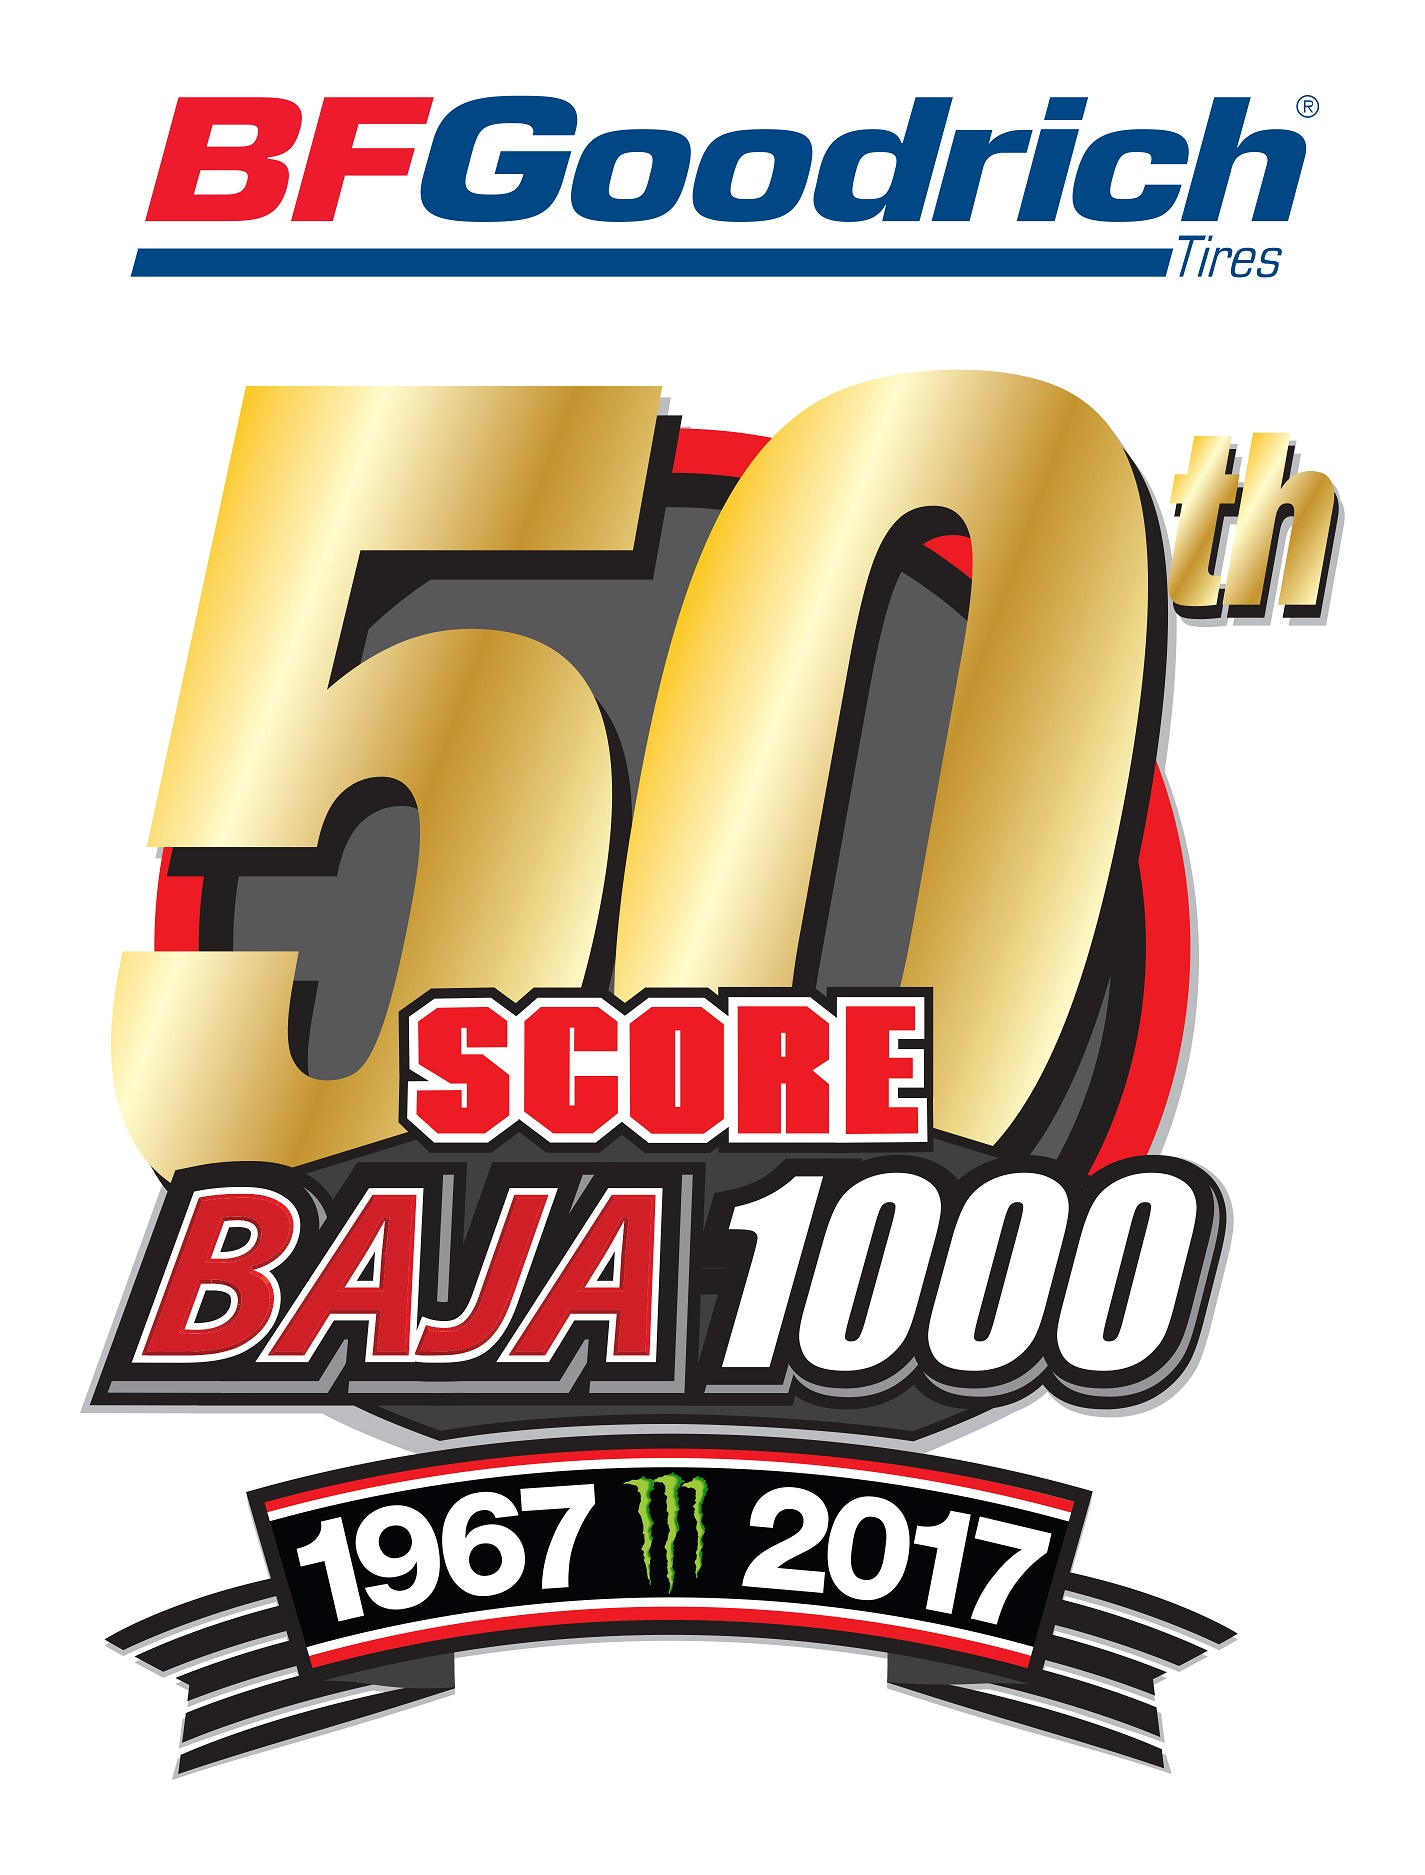 SCORE_Baja1000_50th_BFG_v1_May_29_201750_percent.jpg